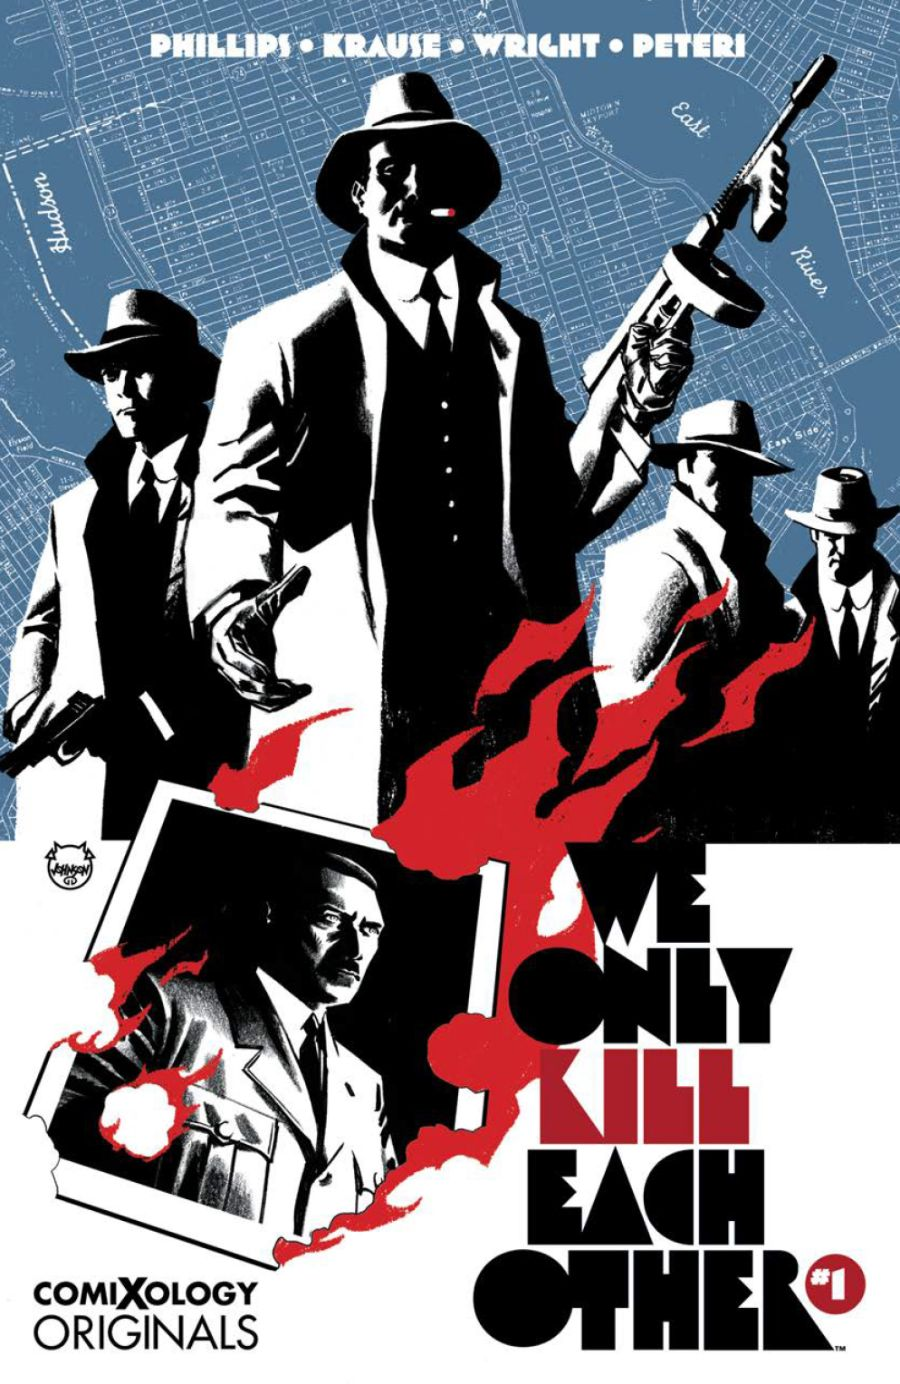 We.Only_.Kill_.Each_.Other_.1.comiXology.Originals.COVER_